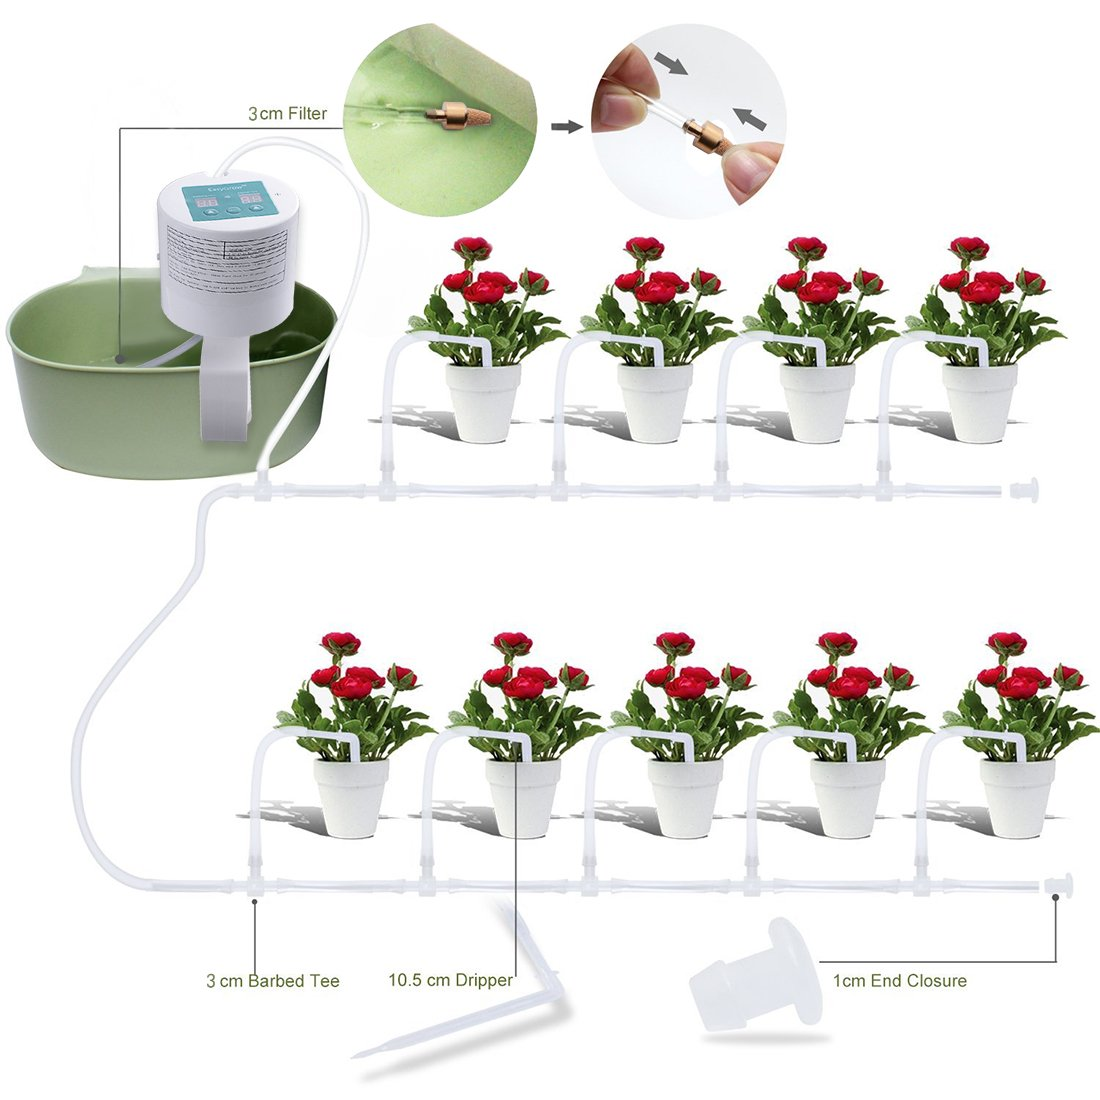 Elitlife Automatic Drip Irrigation Kit, Self Watering System, Vacation Plant Watering, Watering Can, 15-Day Watering Time&Watering Interval Time Setting Indoor Garden/Potted Plants-Simultaneousl